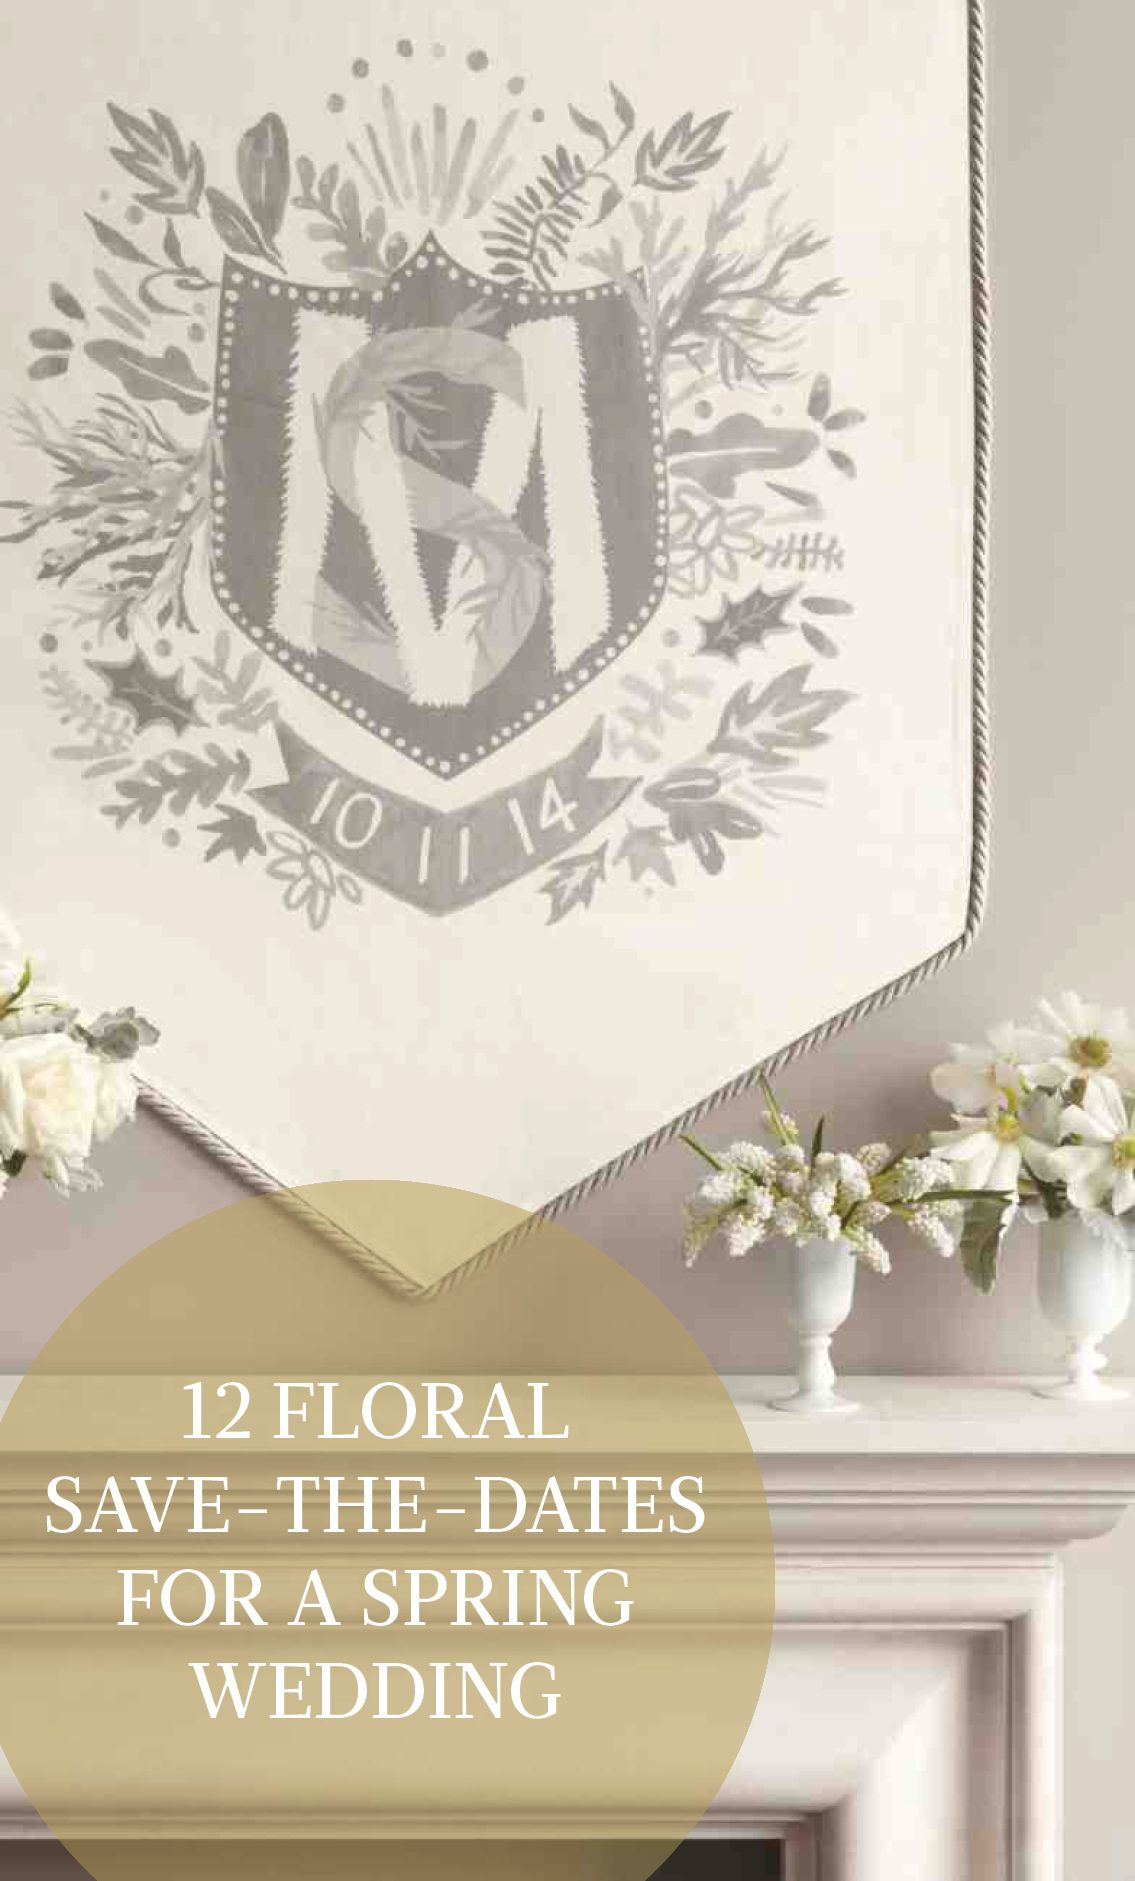 12 floral save the date ideas for a spring wedding stationery